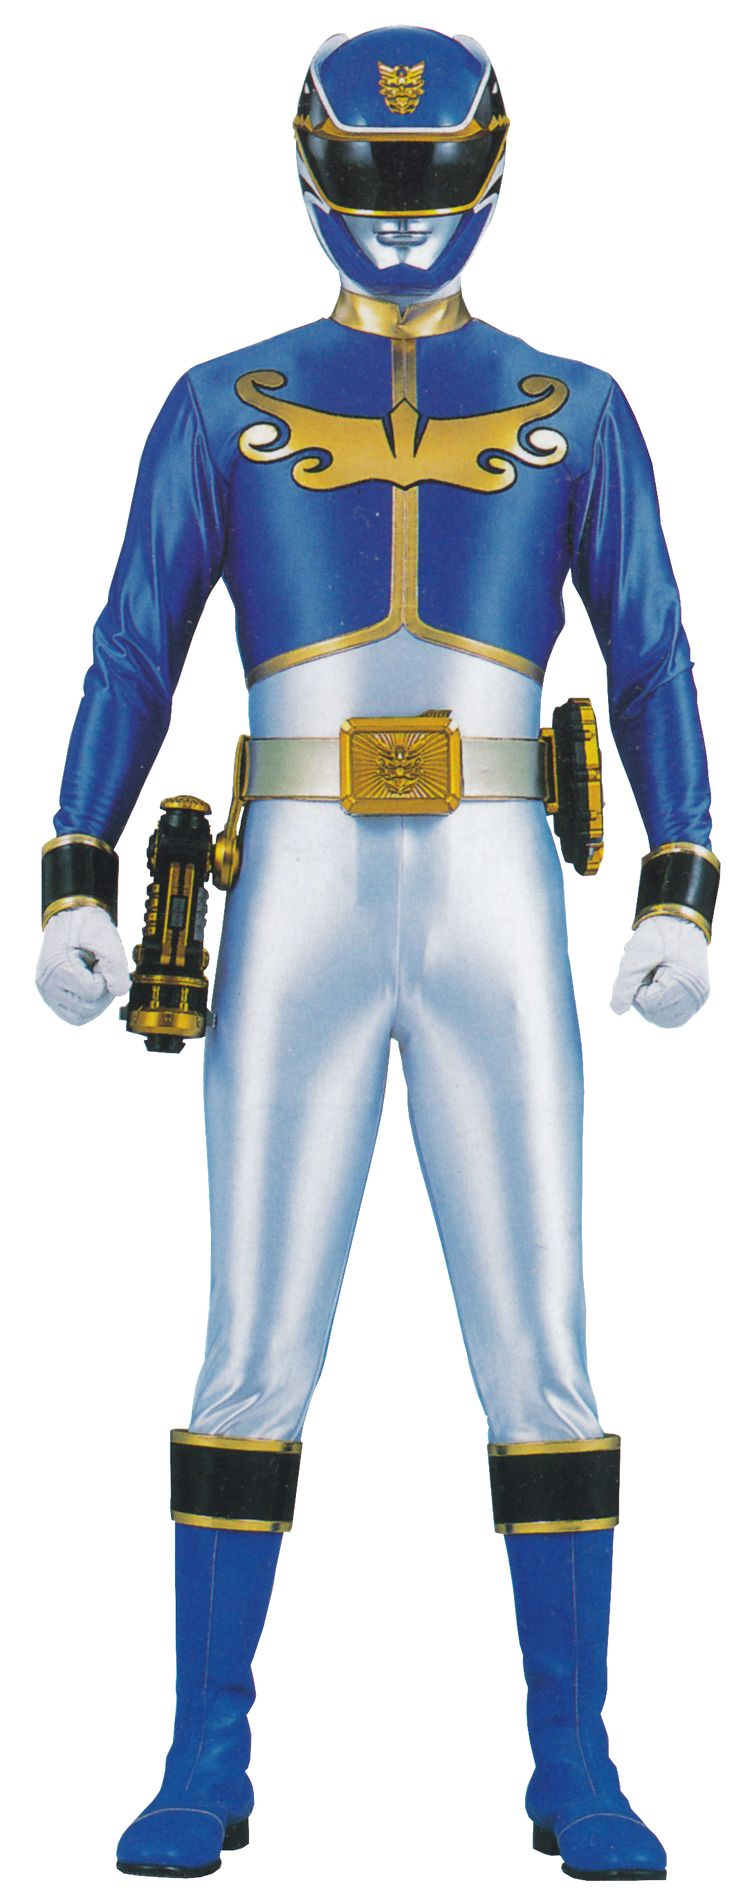 I searched for power rangers megaforce blue ranger images on Bing and found this from http://powerrangers.wikia.com/wiki/Noah_Carver